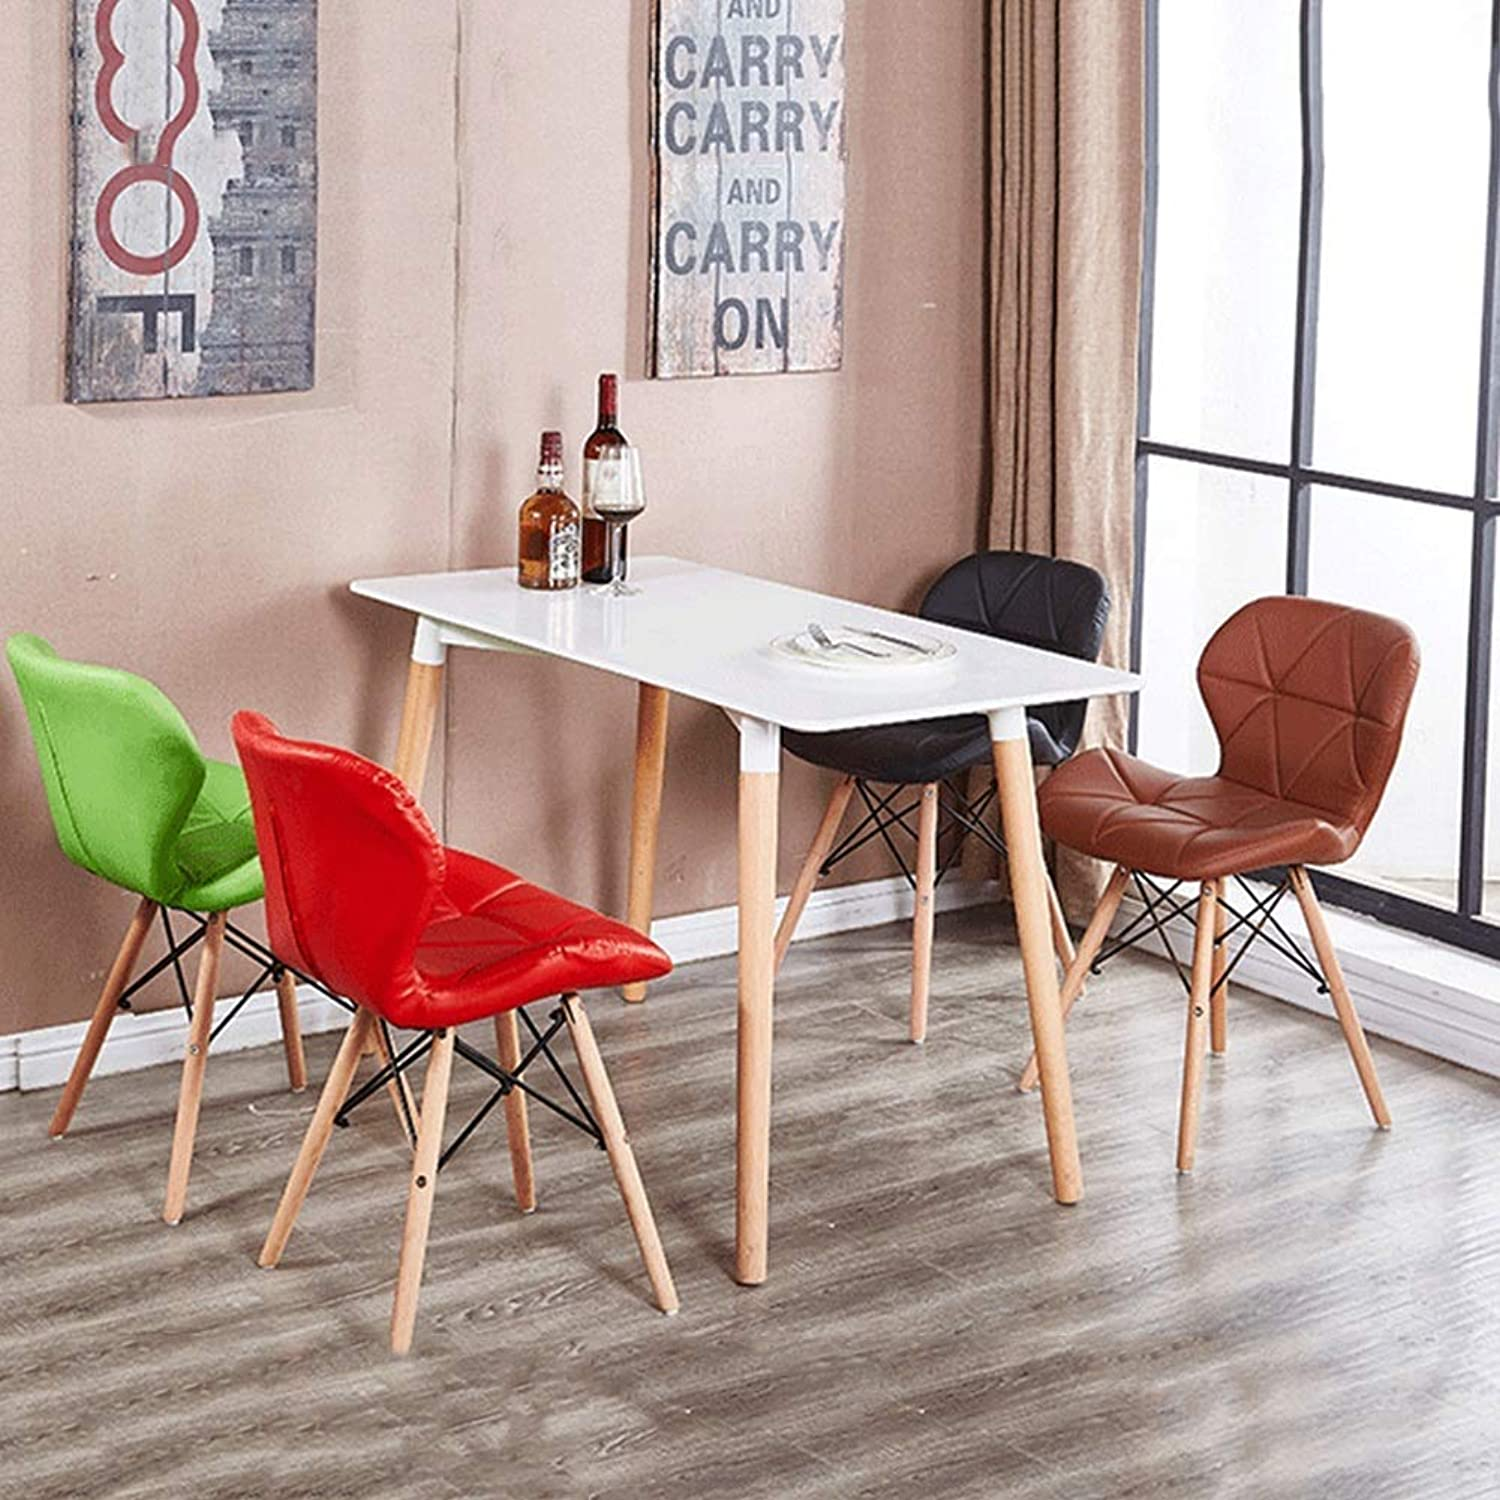 JZX Modern Minimalist Home Computer Chair, Wooden Makeup Chair, Fabric Multi-Function Footstool